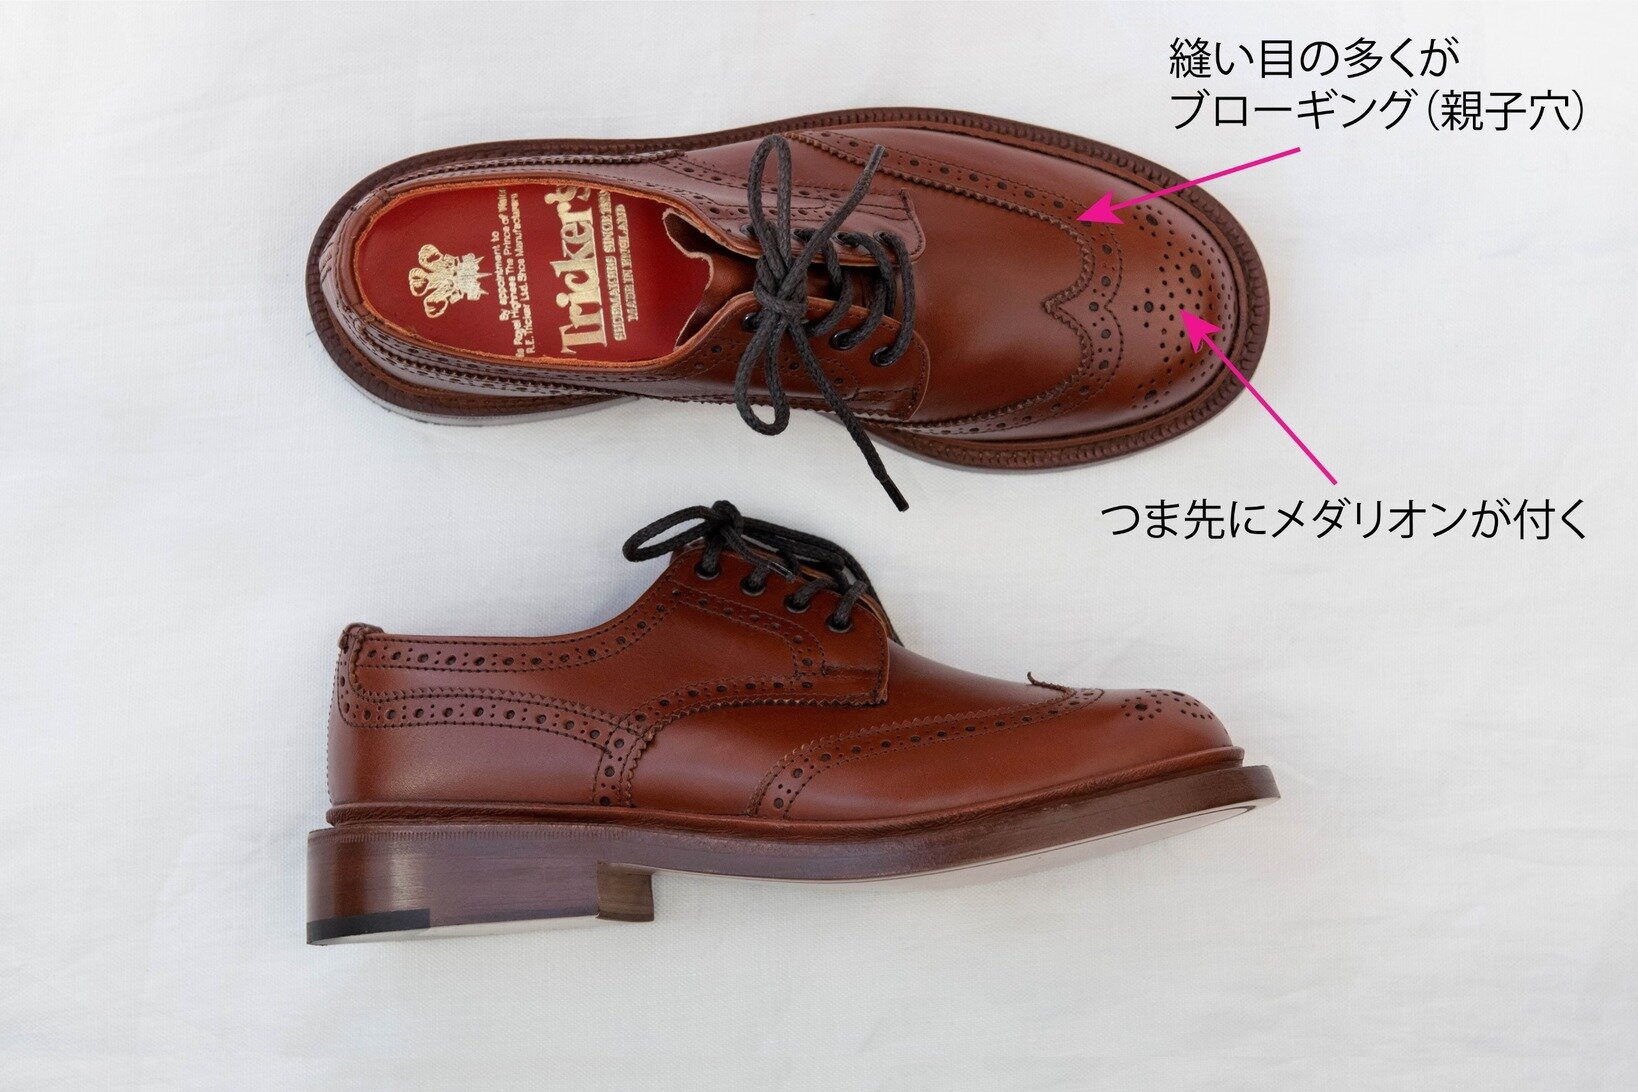 """「<a href=http://www.trickers-store.jp/shopdetail/000000000117/women/page1/recommend/ target='_blank'>ANNE(L5679)</a>」¥75,000+税/トリッカーズ青山店 ▶︎靴の詳細は<a href=""""https://muuseo.com/square/articles/1322"""" target=""""_blank"""">連載第2回</a>をチェック!"""